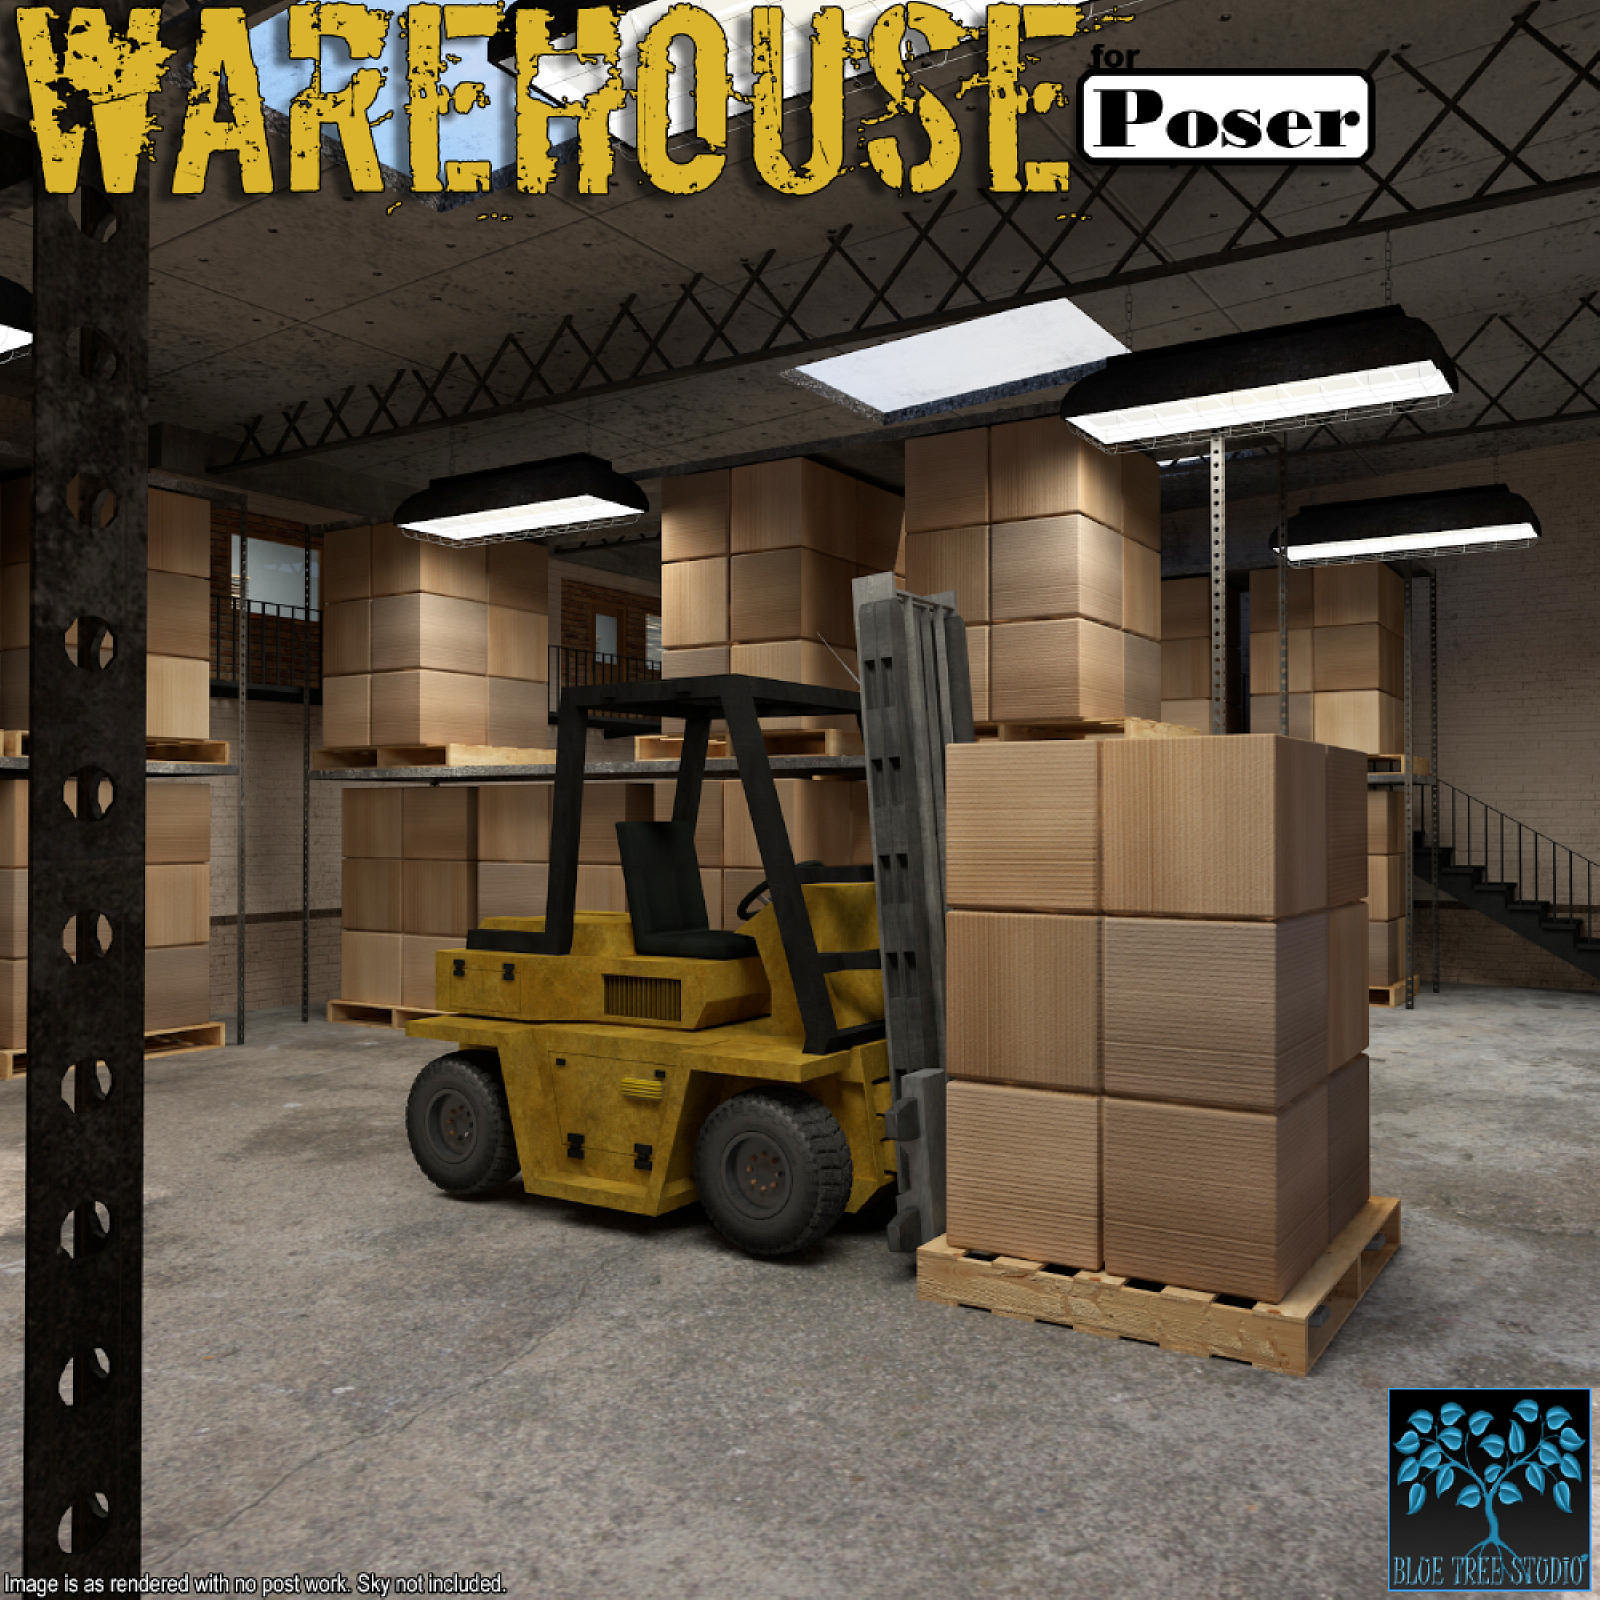 Warehouse for Poser by BlueTreeStudio